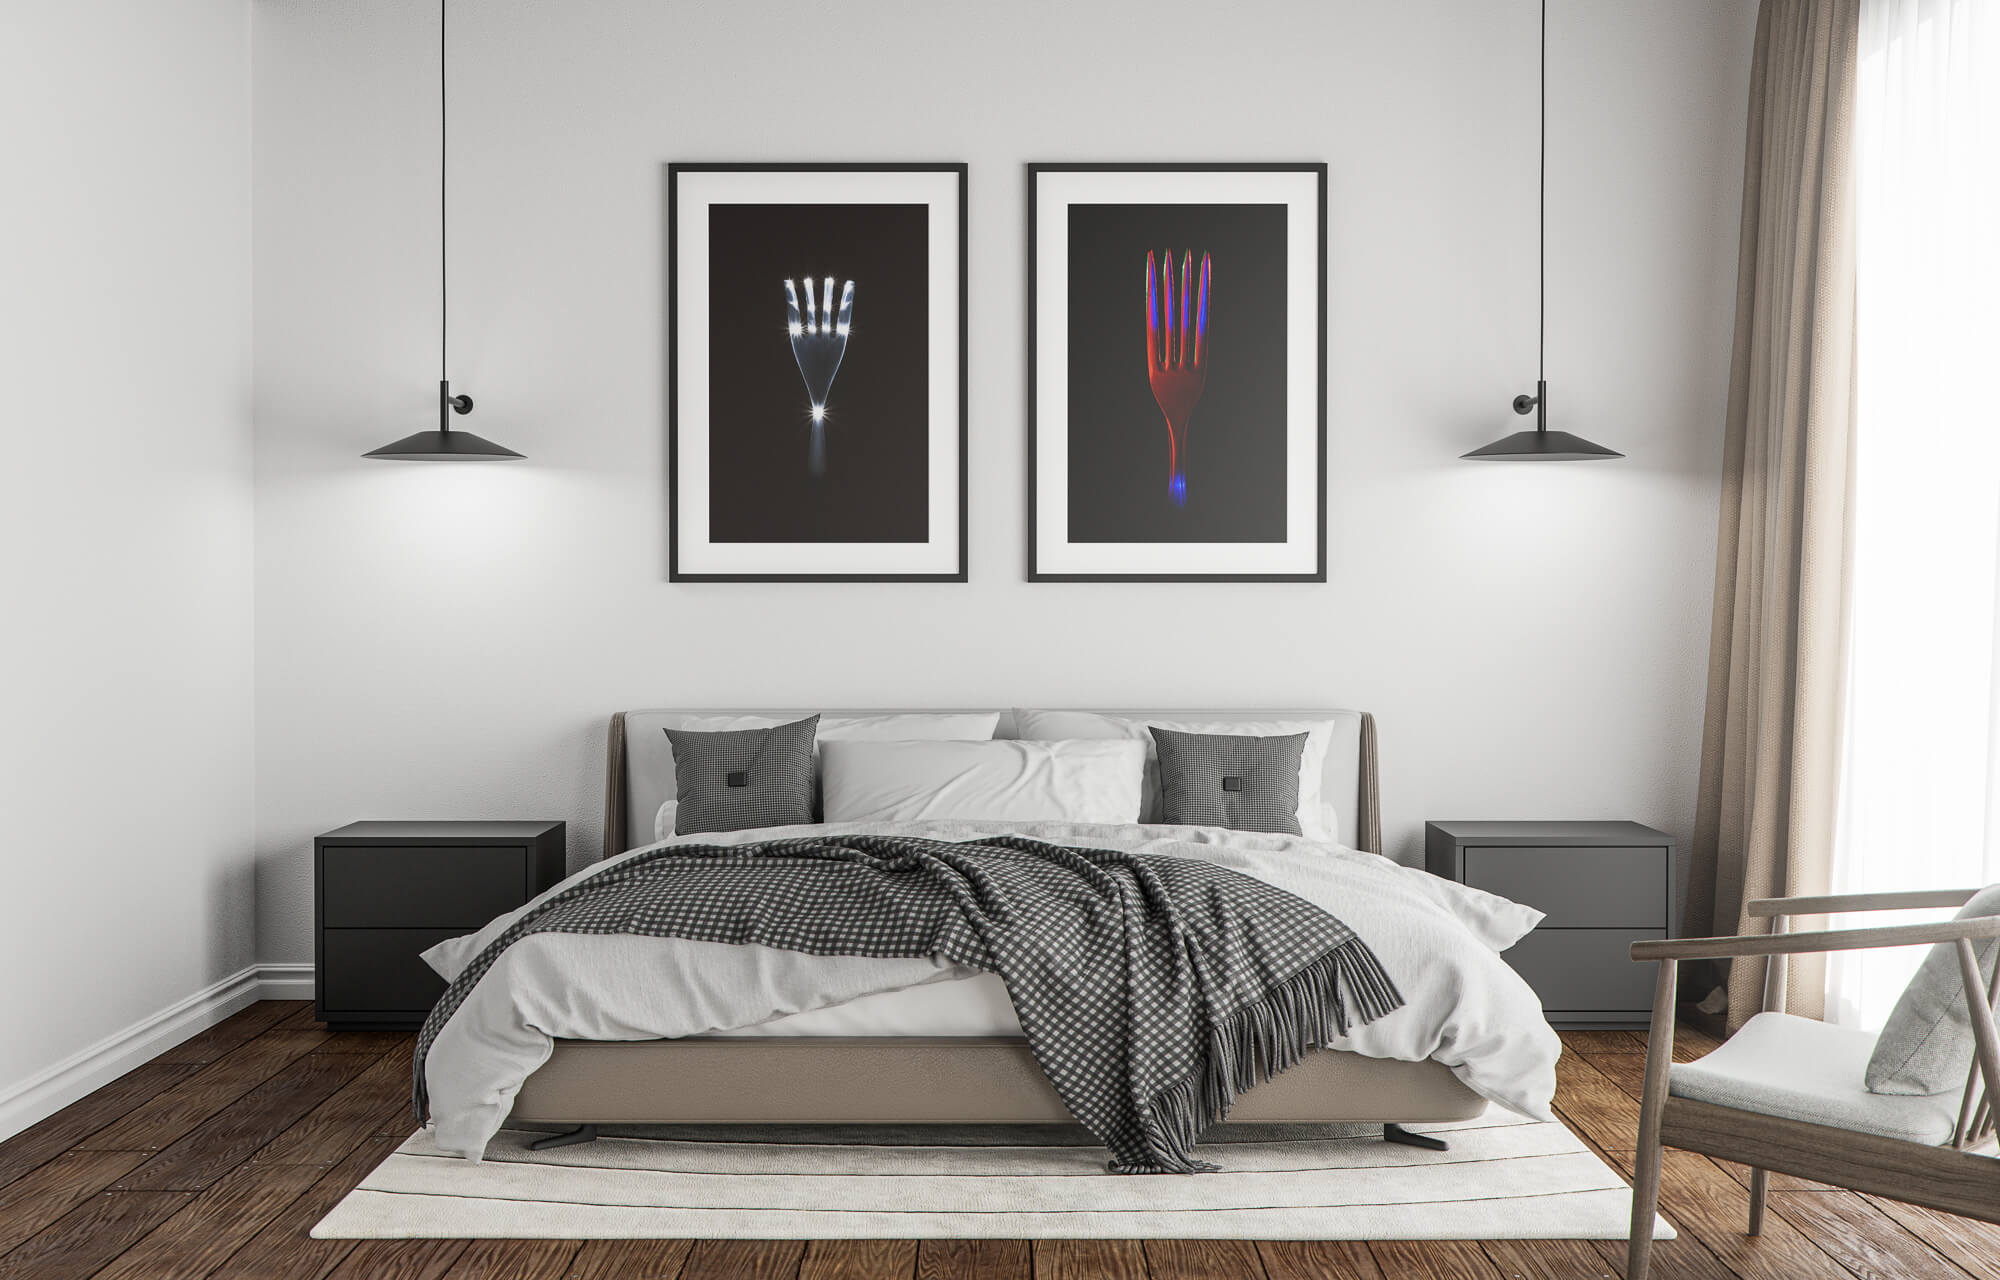 Limited edition print The Fork #3 and #11